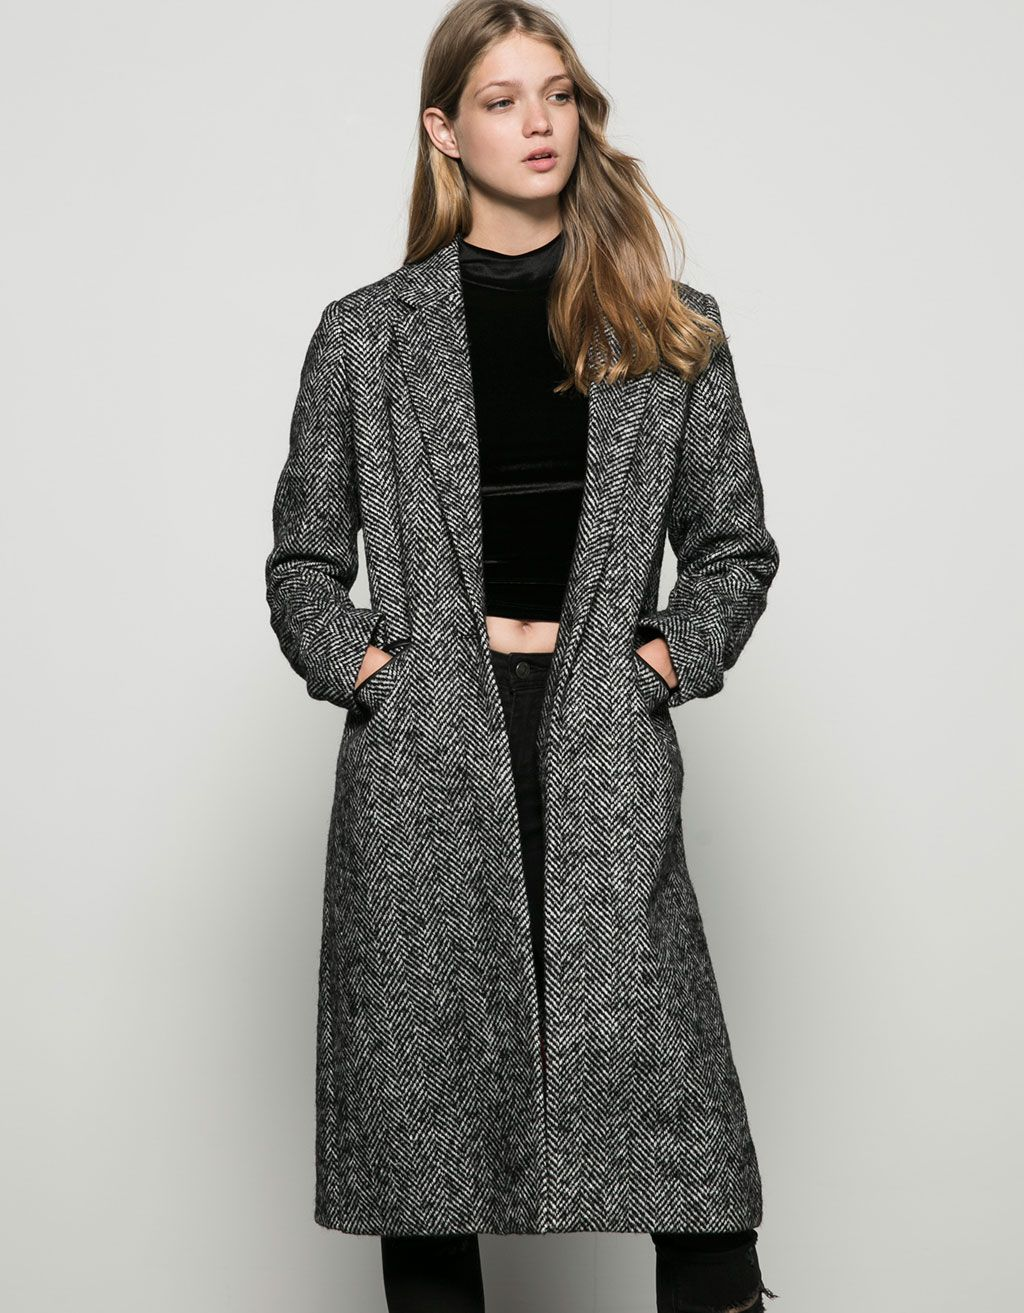 Bershka Turkey - Bershka long wool coat 042fe1b7f